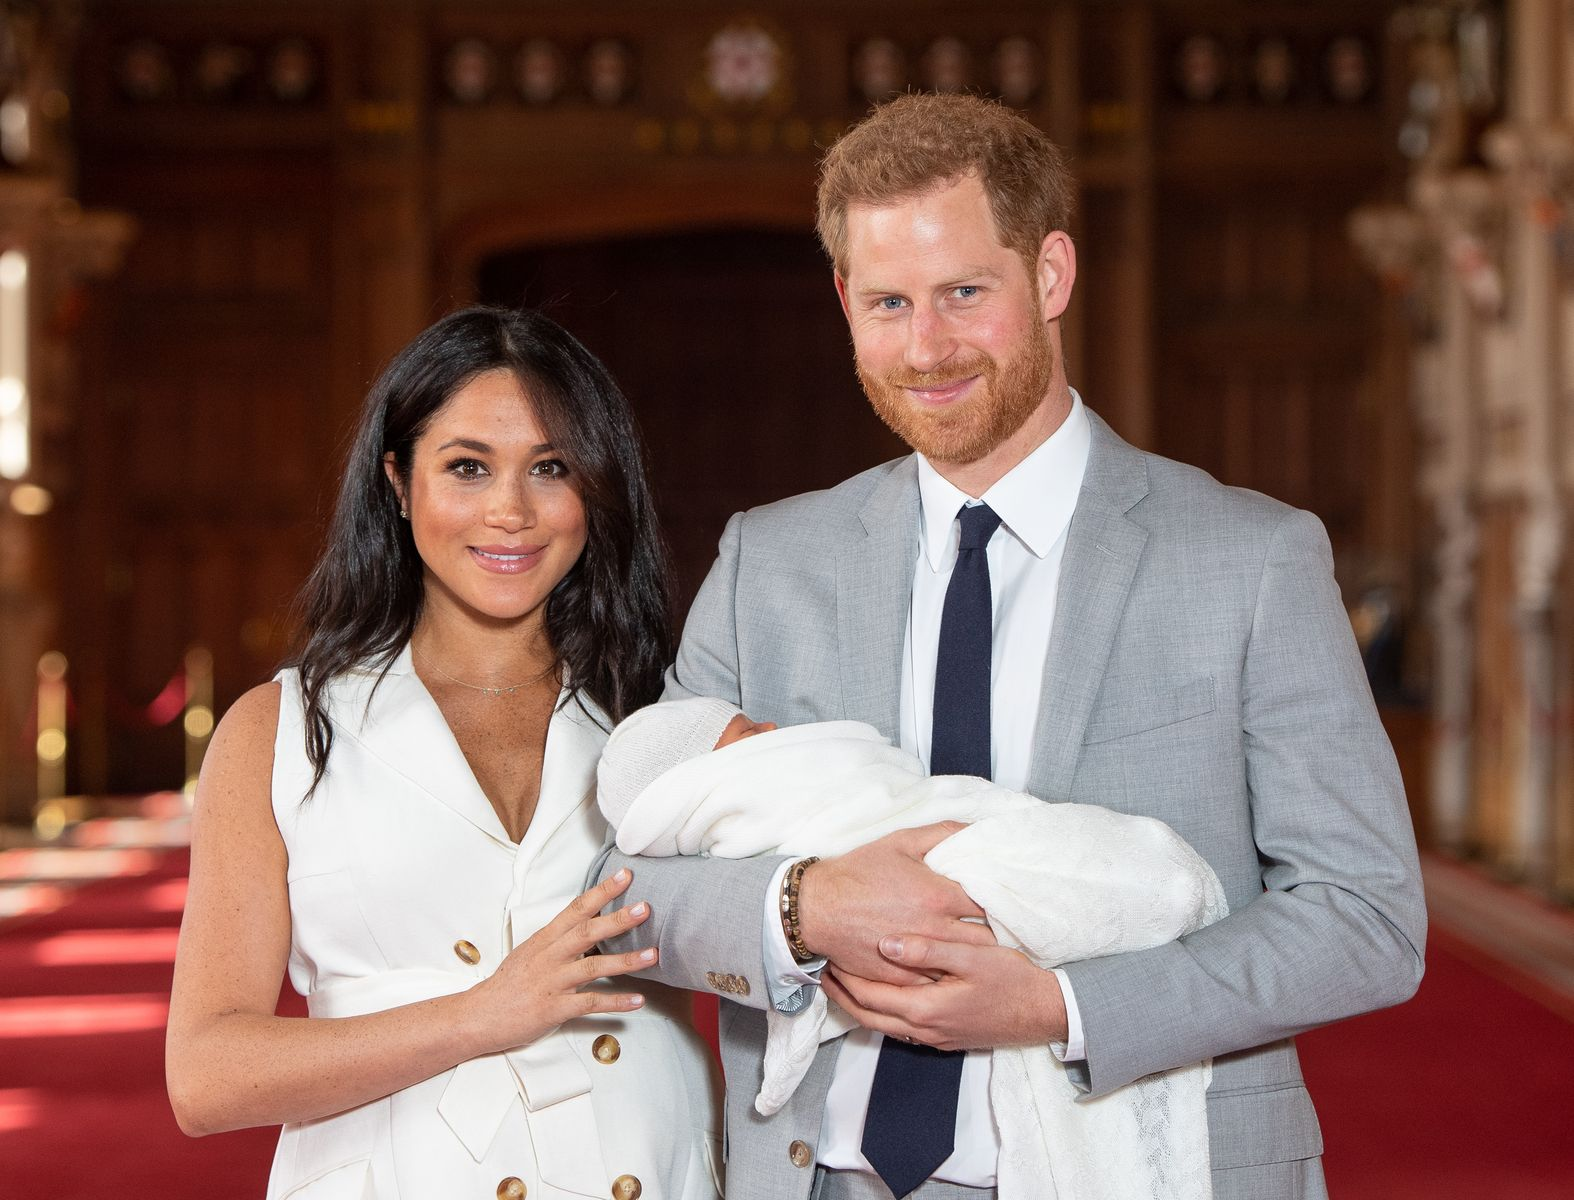 Prince Harry and Meghan Markle with their newborn son Archie Harrison Mountbatten-Windsor at Windsor Castle on May 8, 2019 | Getty Images